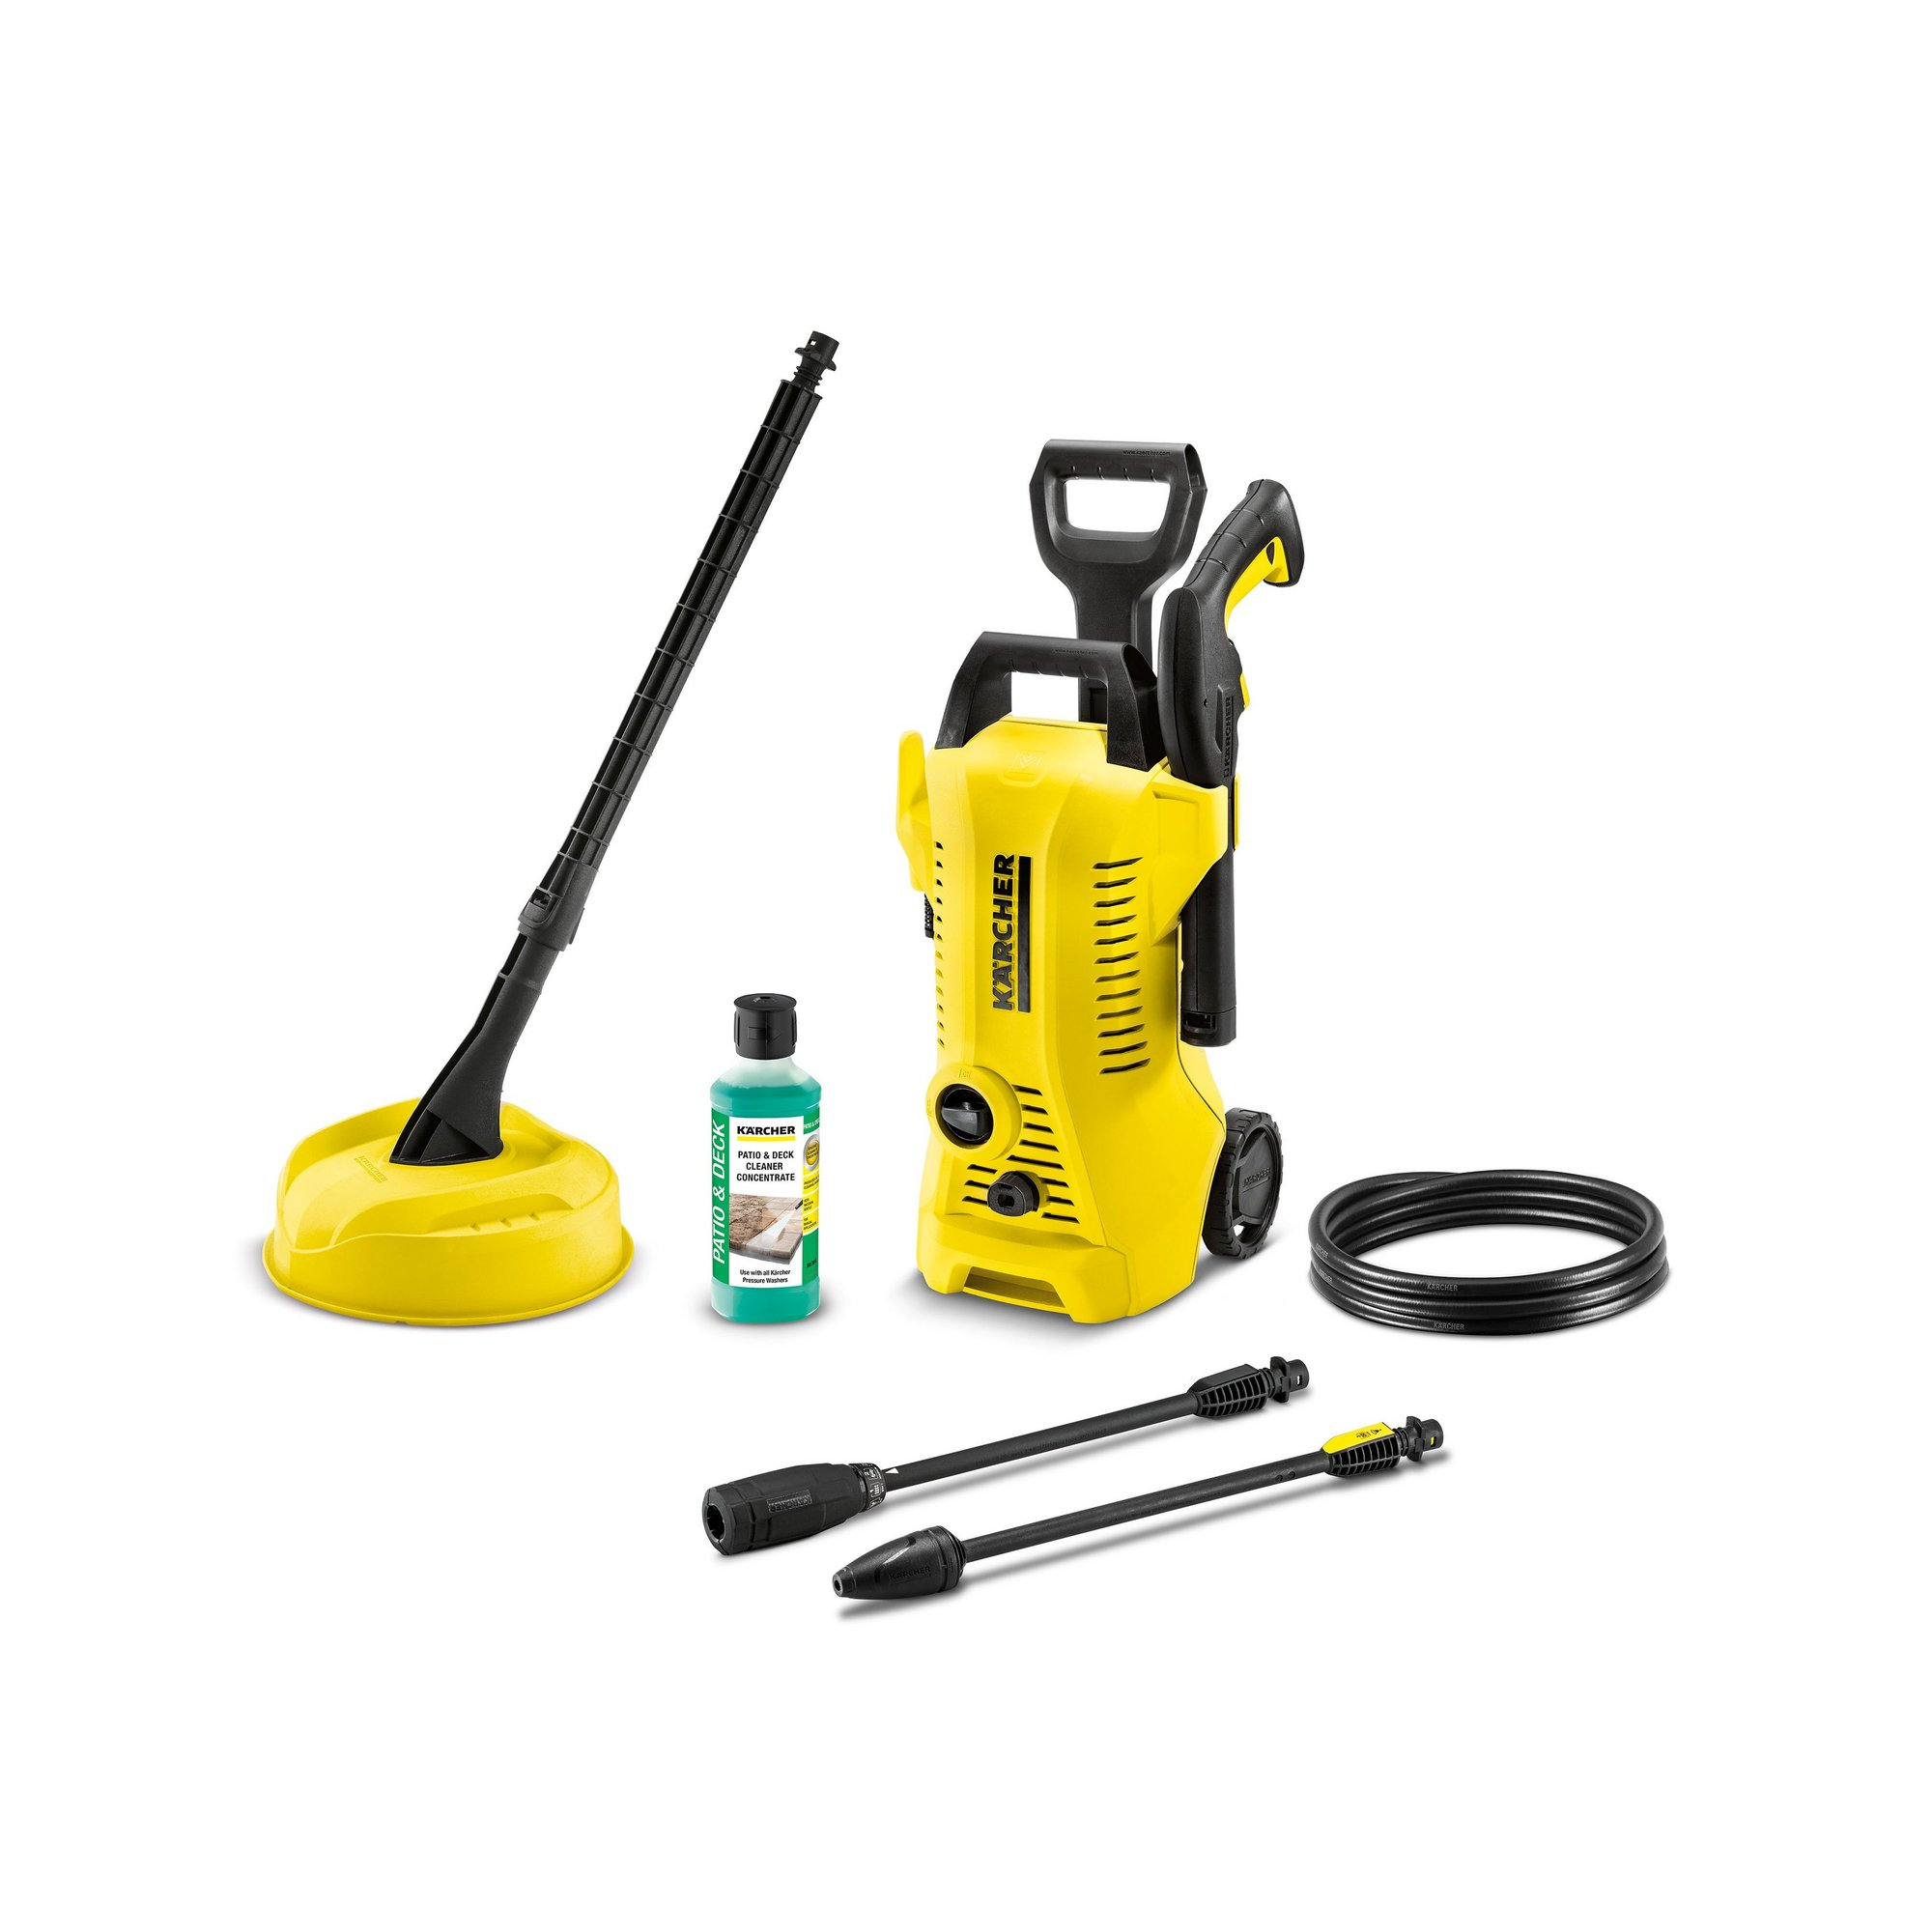 Image of Karcher K2 Power Control Home Pressure Washer